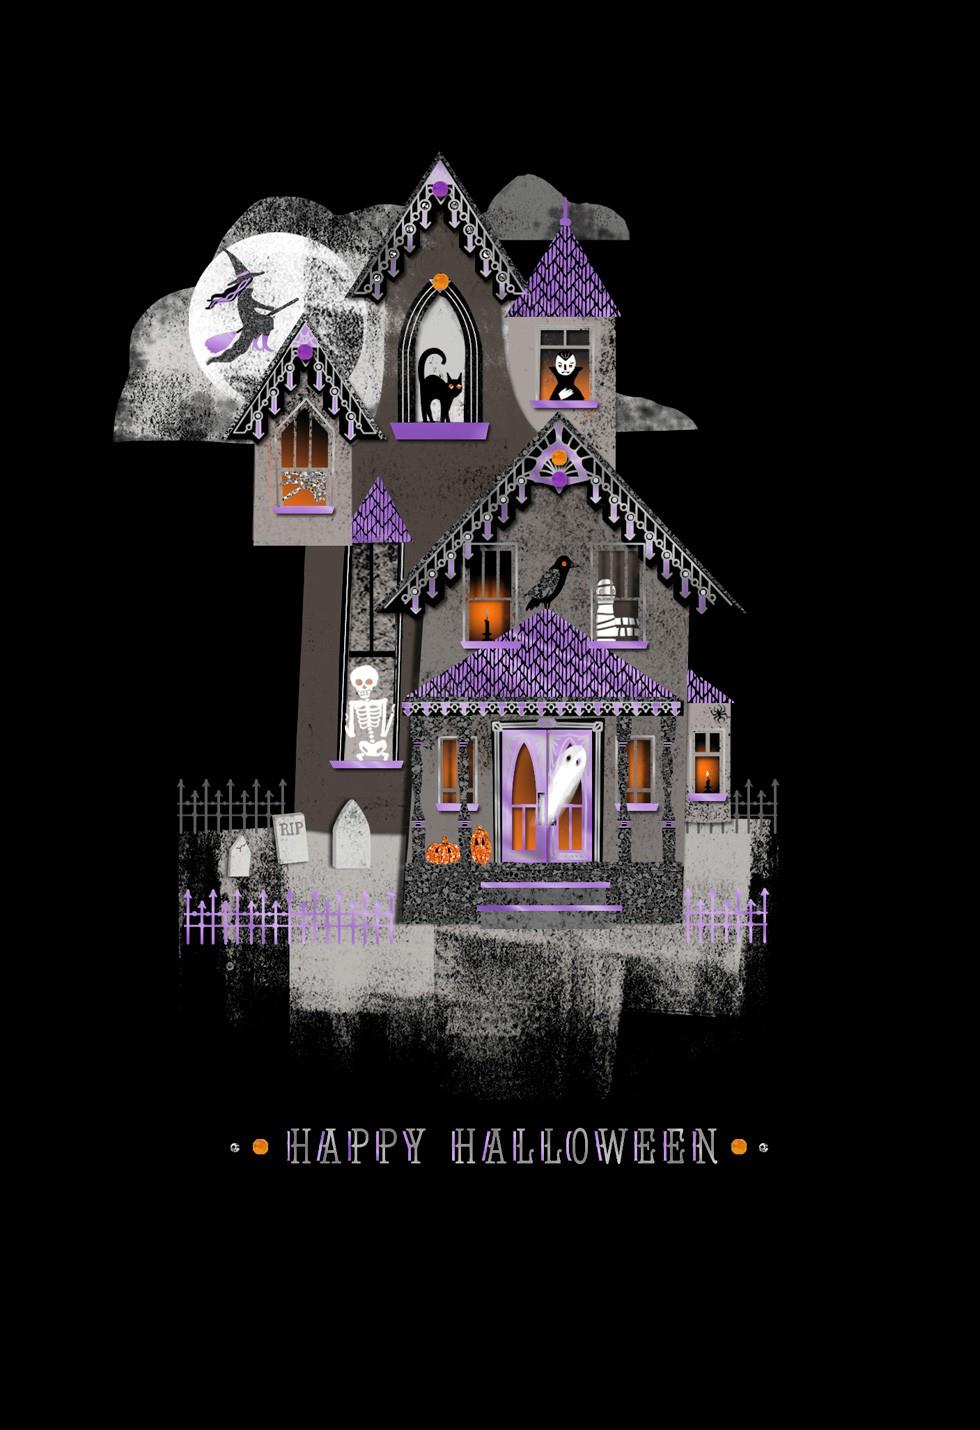 Spirited Haunted House Halloween Card Greeting Cards